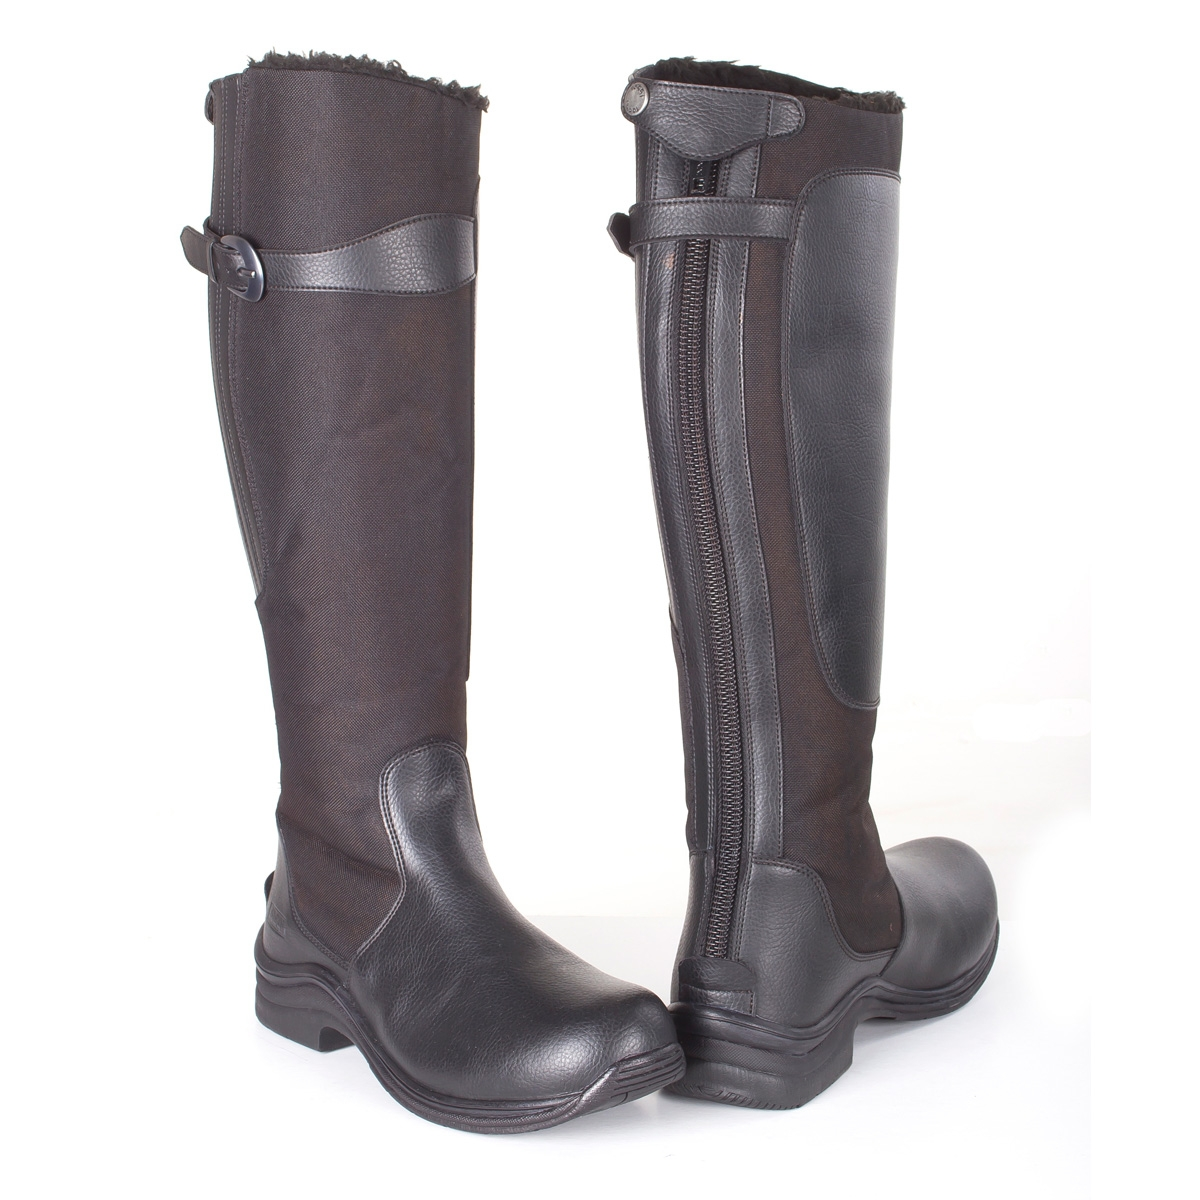 toggi boots image of toggi chinook fleece lined riding boots (womens) - black ... mmazjdp